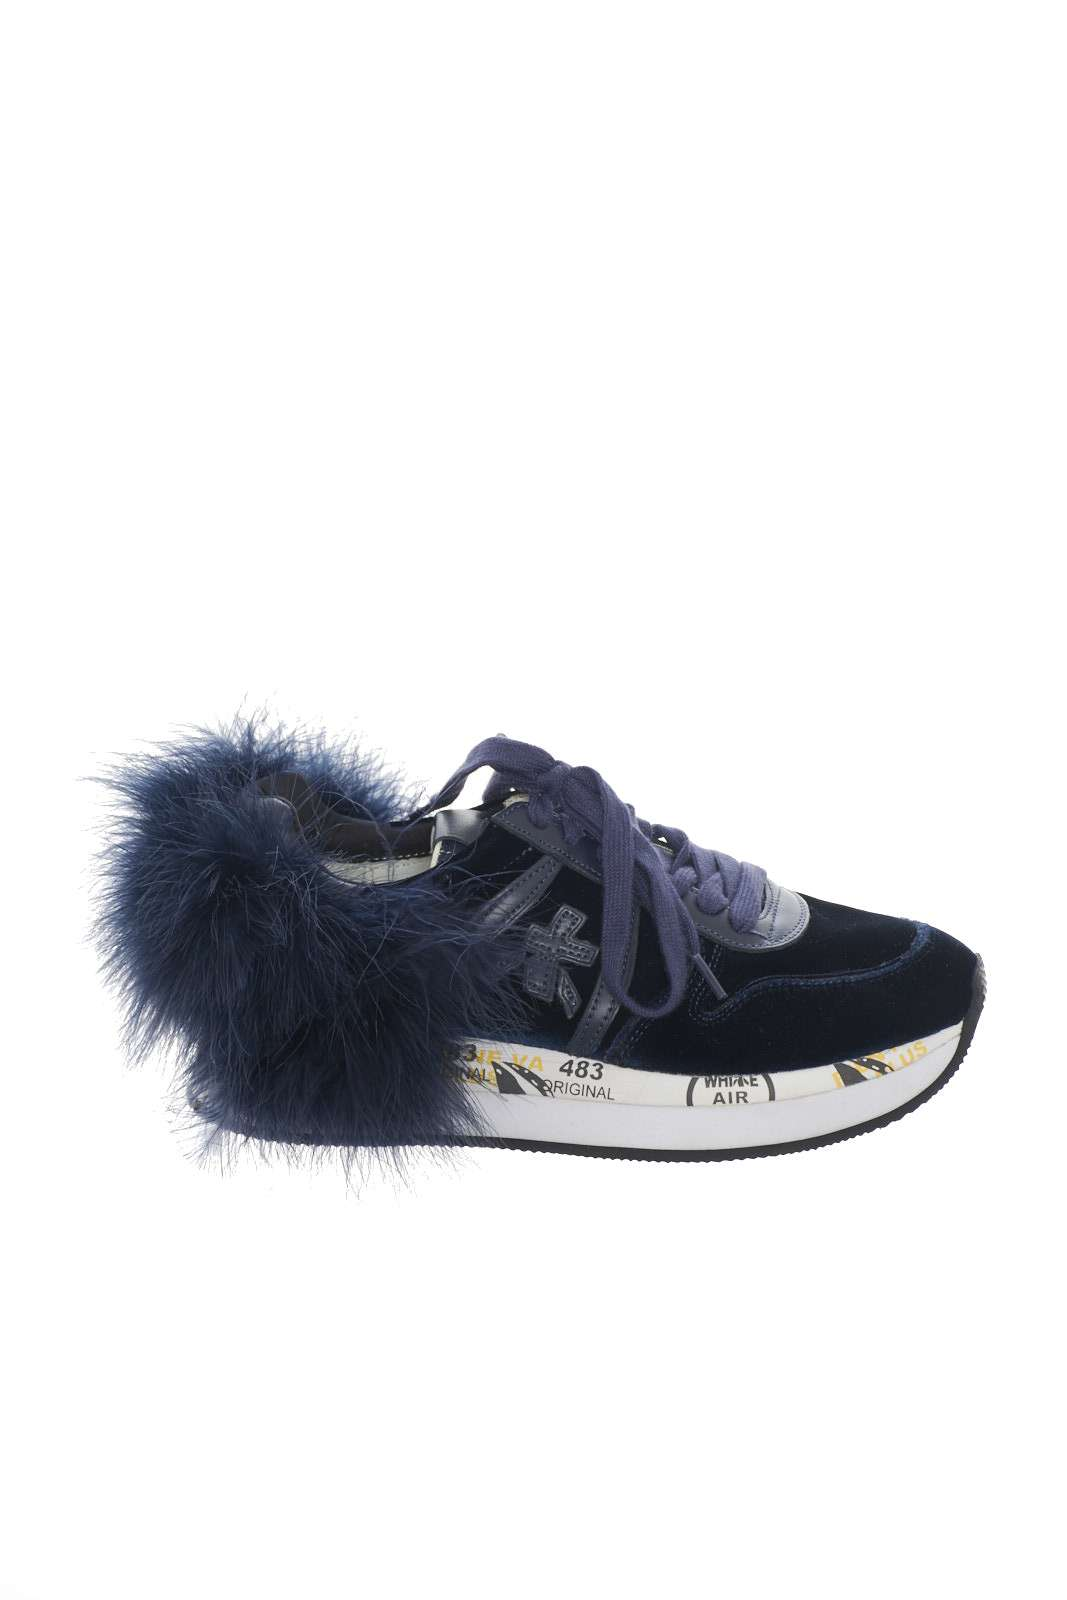 https://www.parmax.com/media/catalog/product/a/i/AI-outlet_parmax-sneakers-donna-Premiata-HOLLY-A.jpg